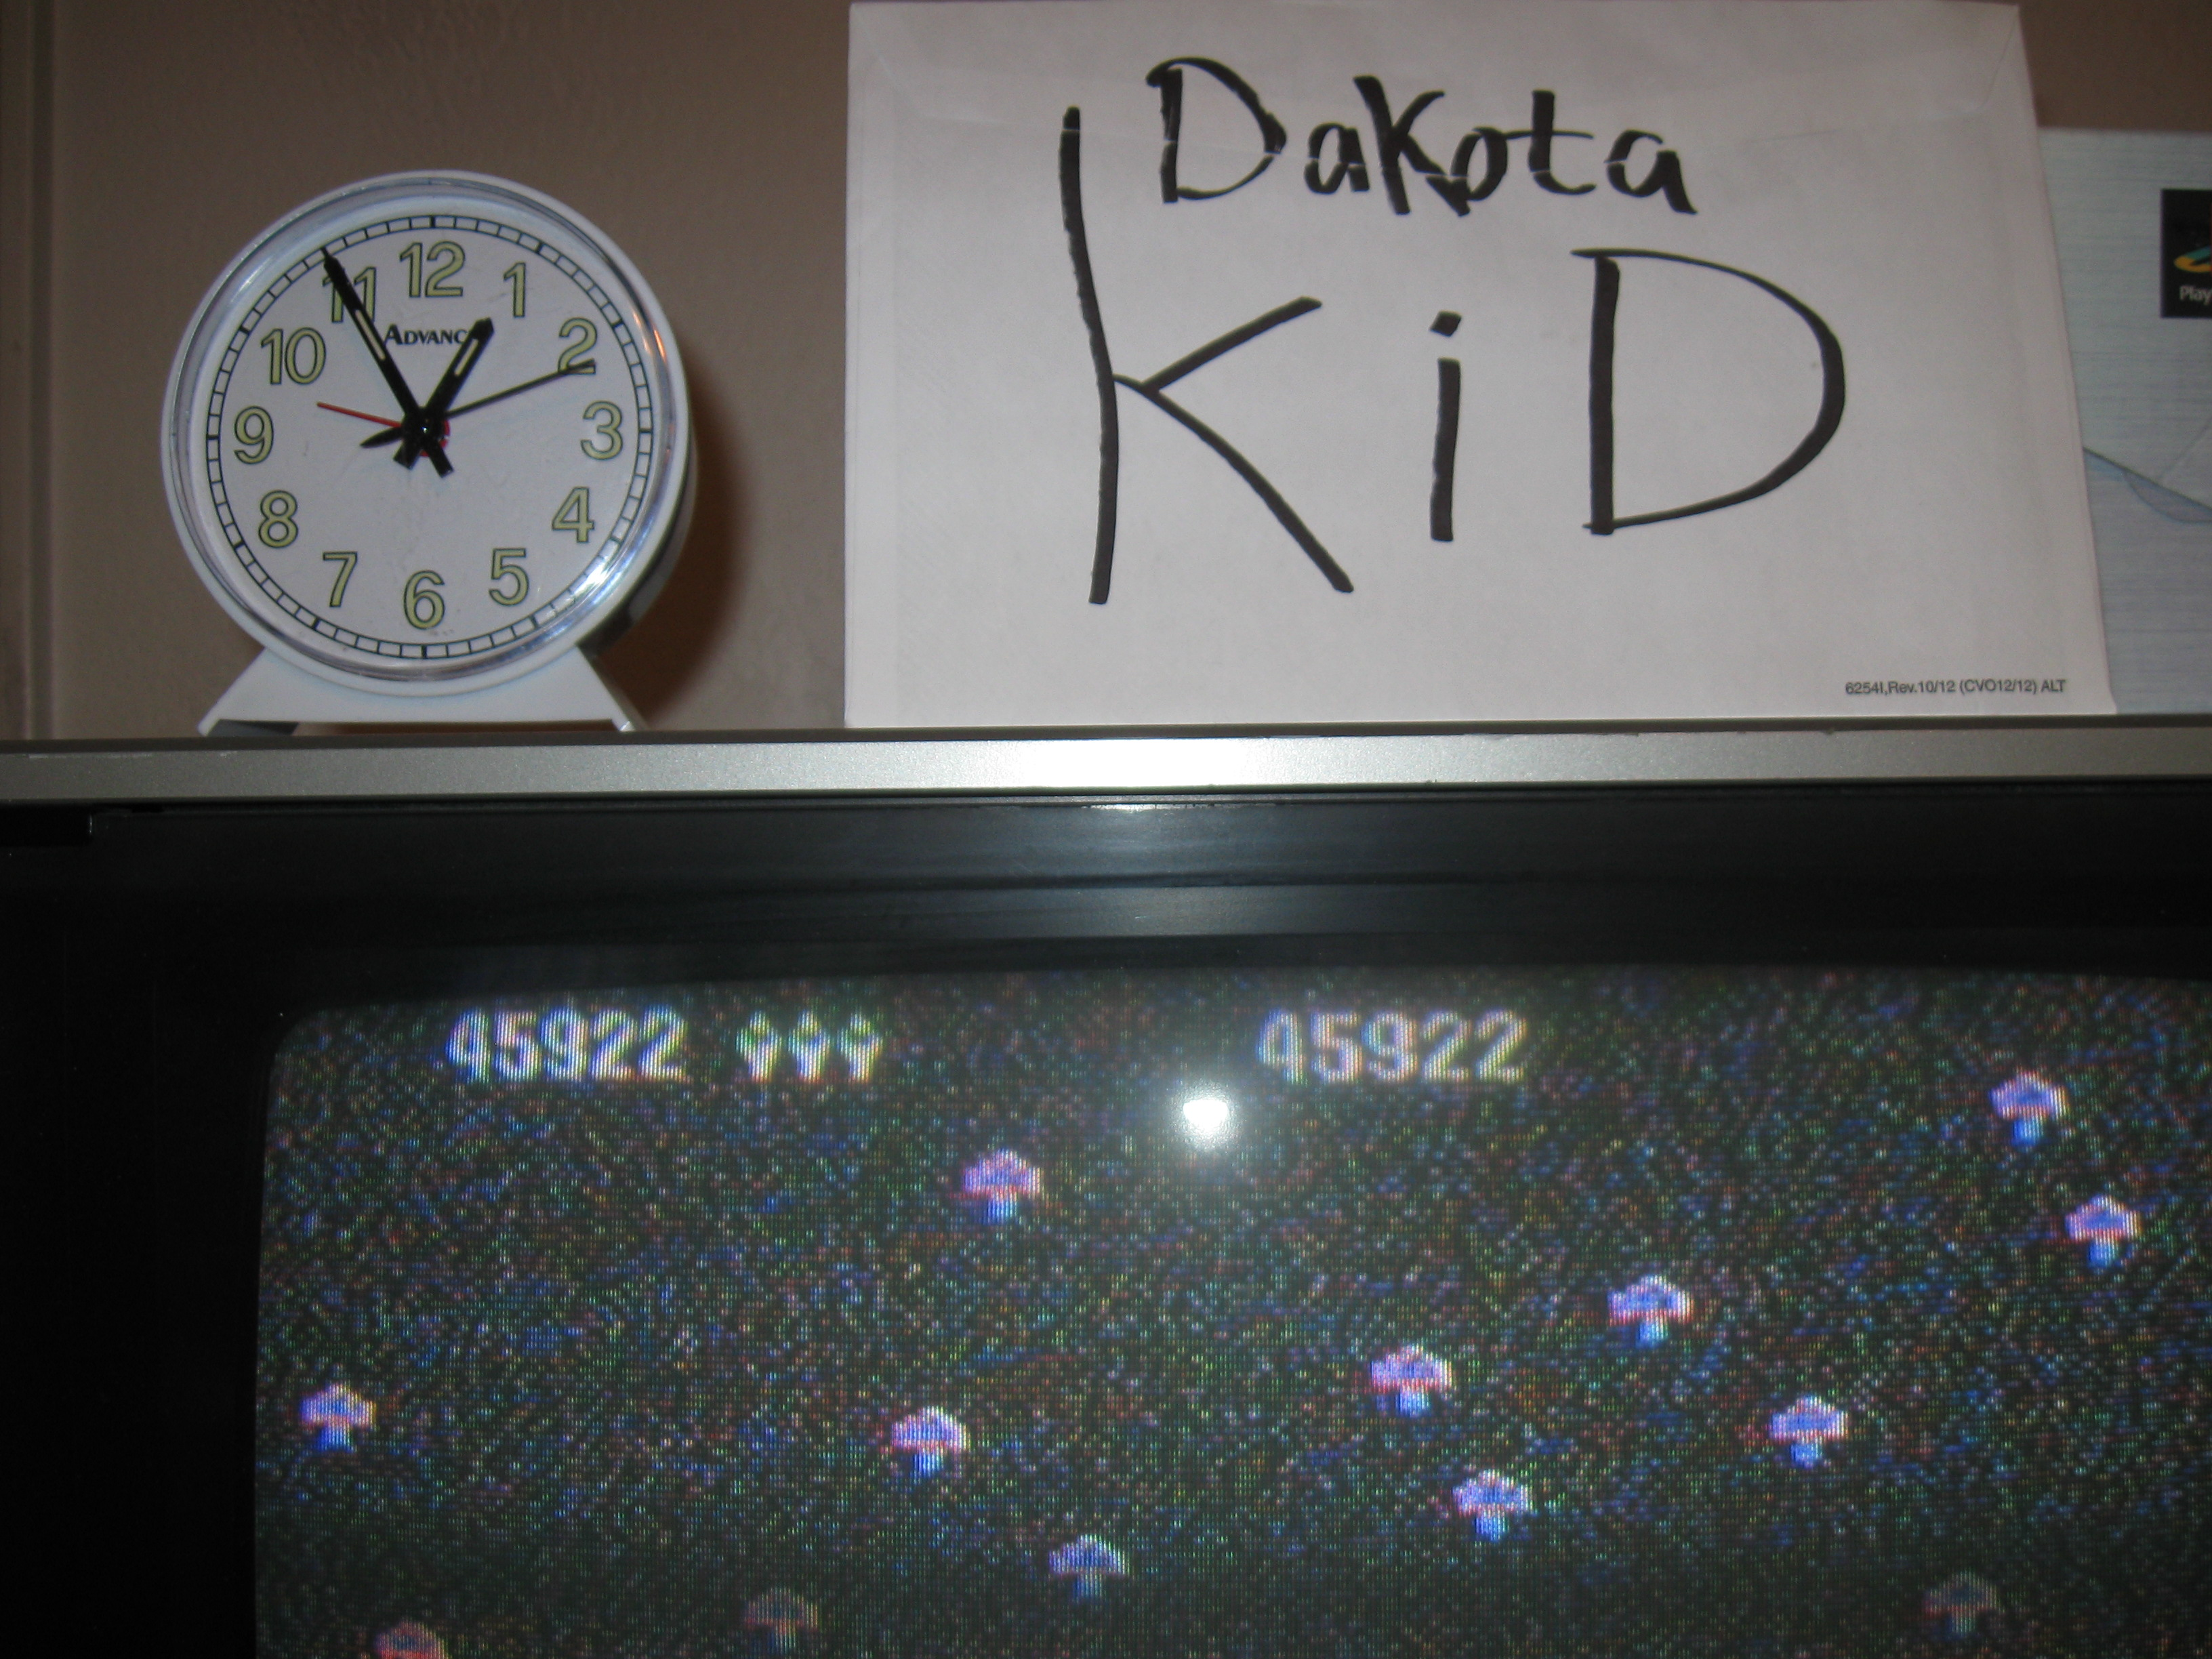 DakotaKid: Centipede: Easy (Atari 5200) 45,922 points on 2016-04-13 19:27:23